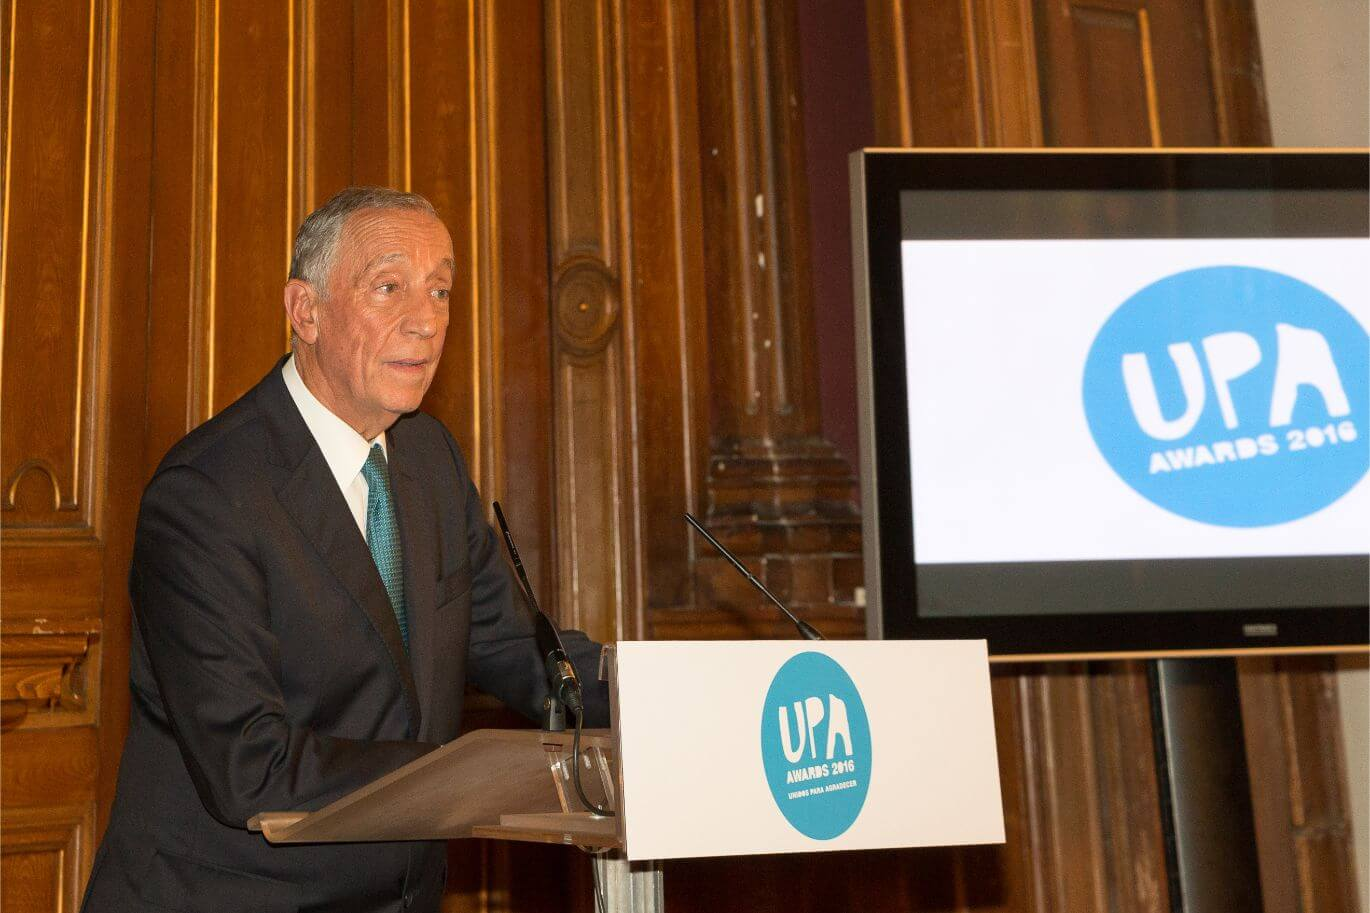 Presidente Marcelo Rebelo de Sousa giving a speech at Encontrar+se